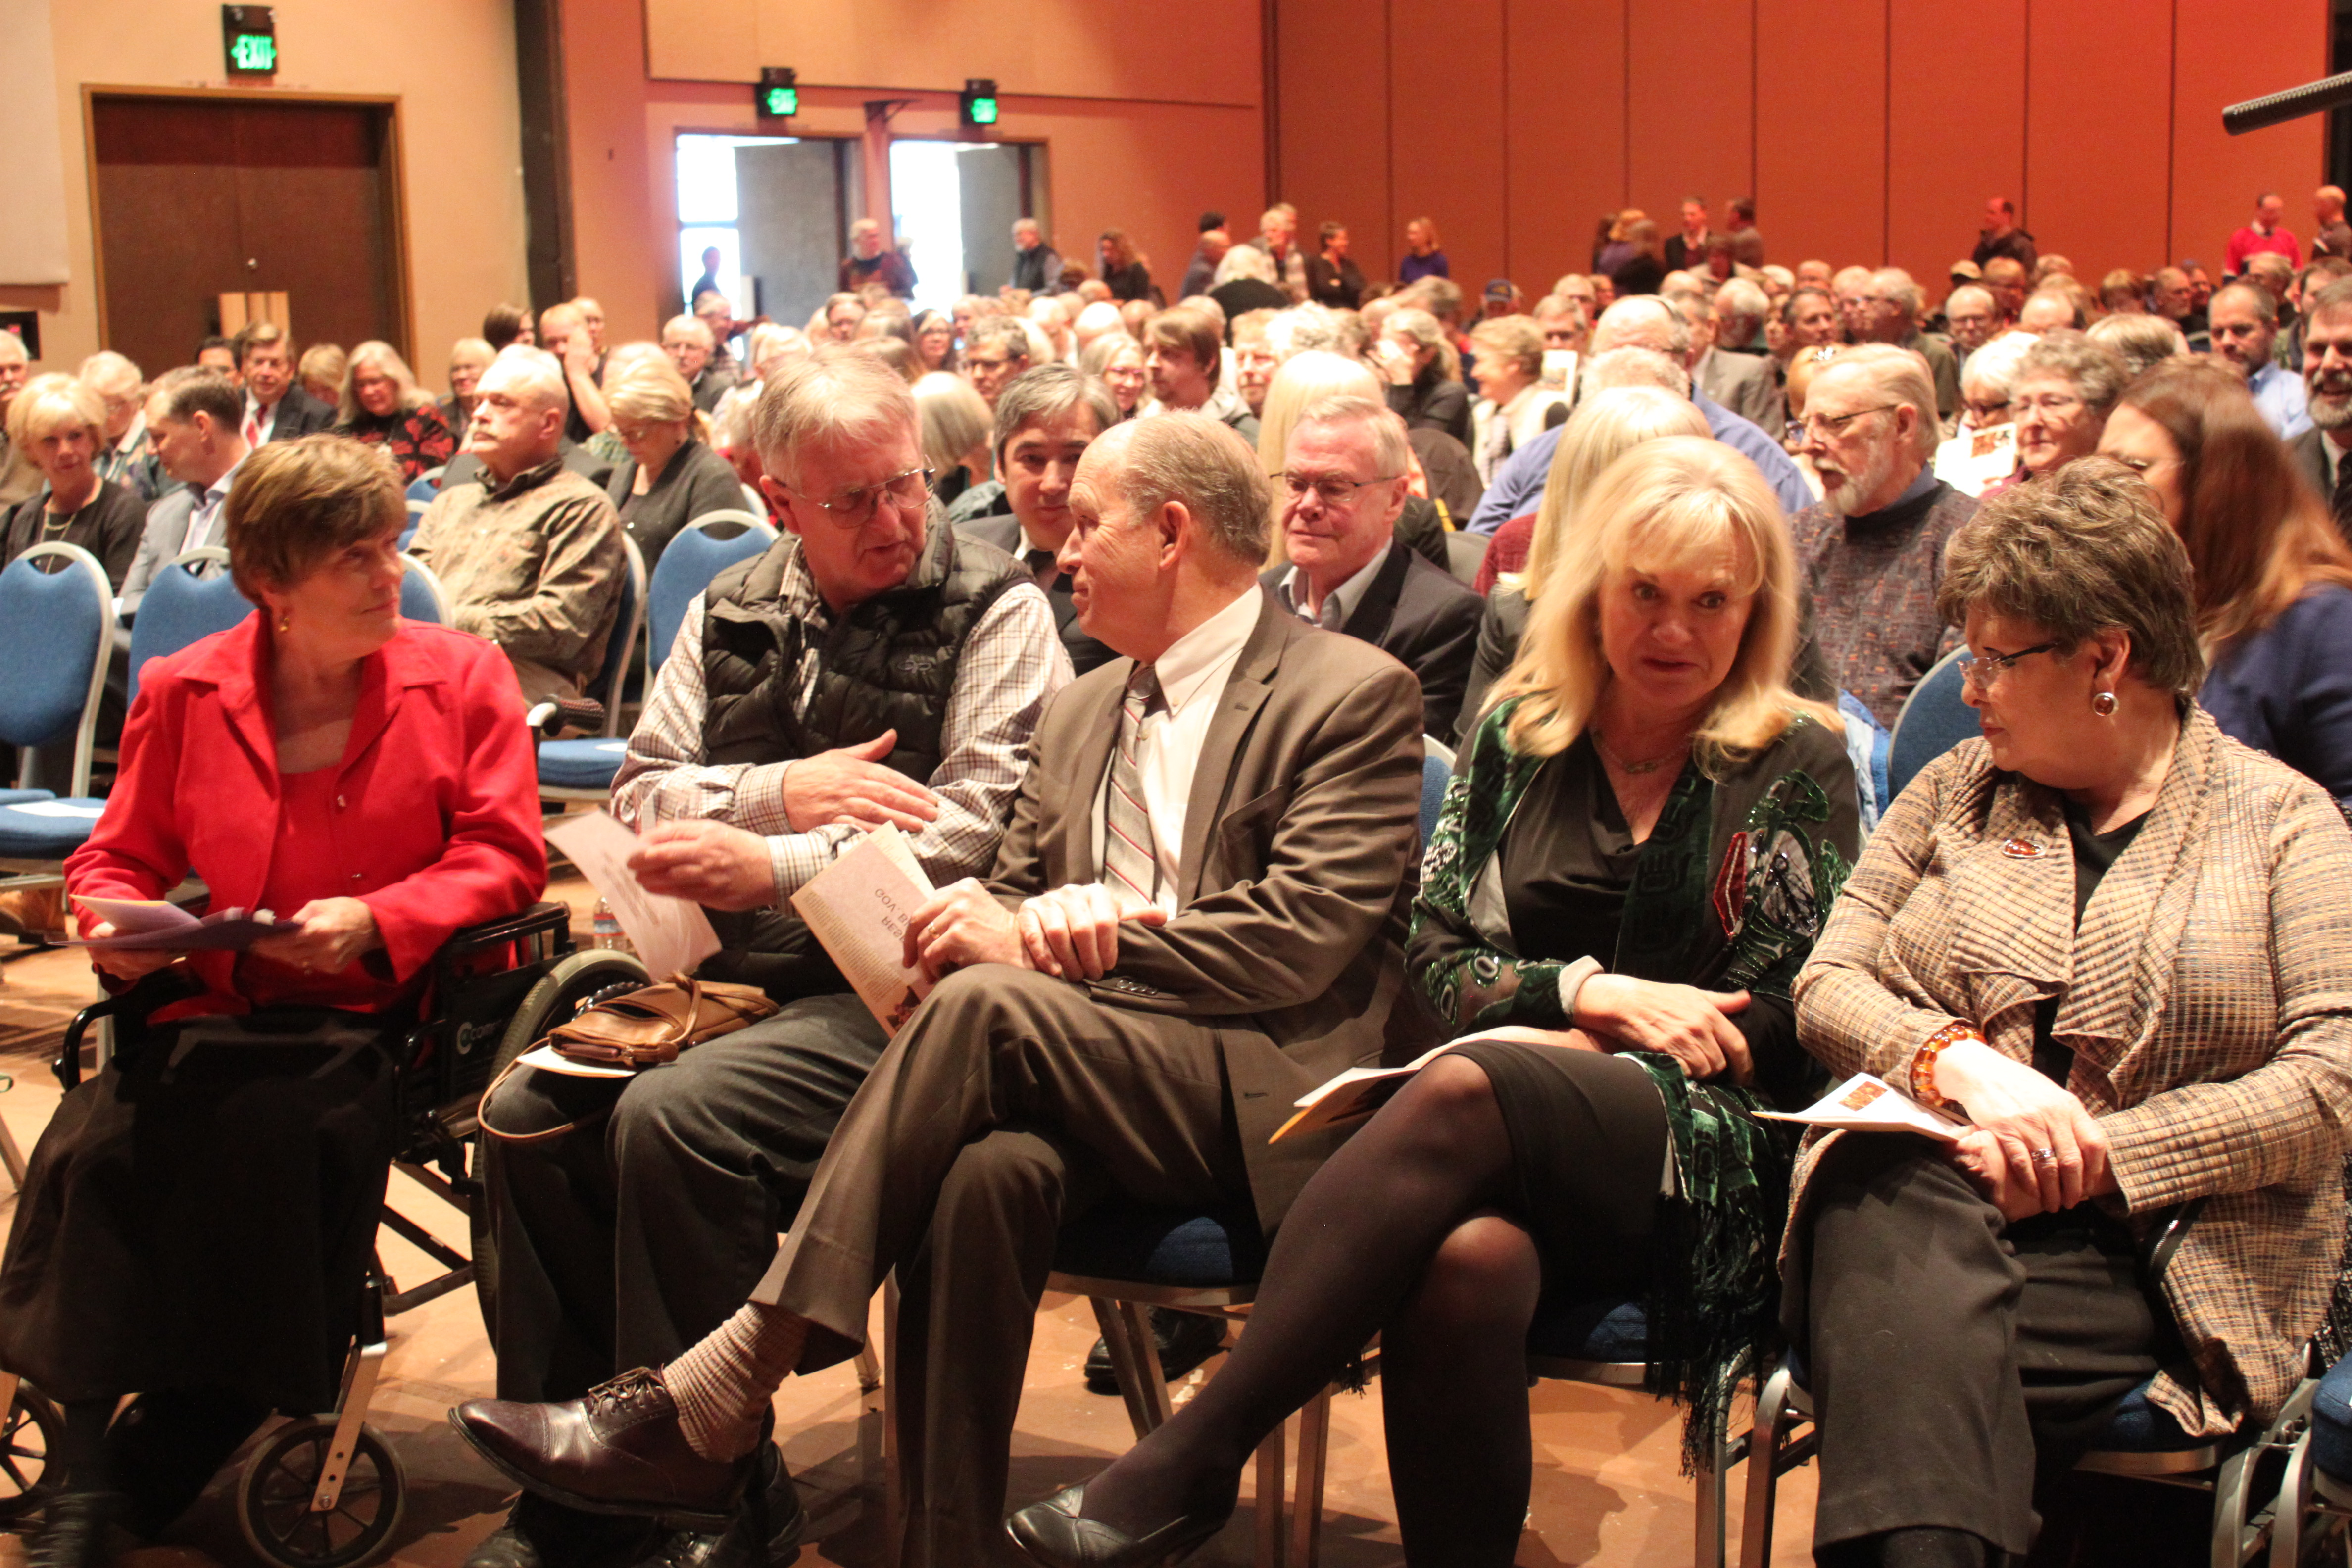 Around 400 people attended the celebration of life for Mayor Greg Fisk, including Gov. Bill Walker, First Lady Donna Walker, Juneau state lawmakers and Juneau Assembly members. (Photo by Lisa Phu/KTOO)